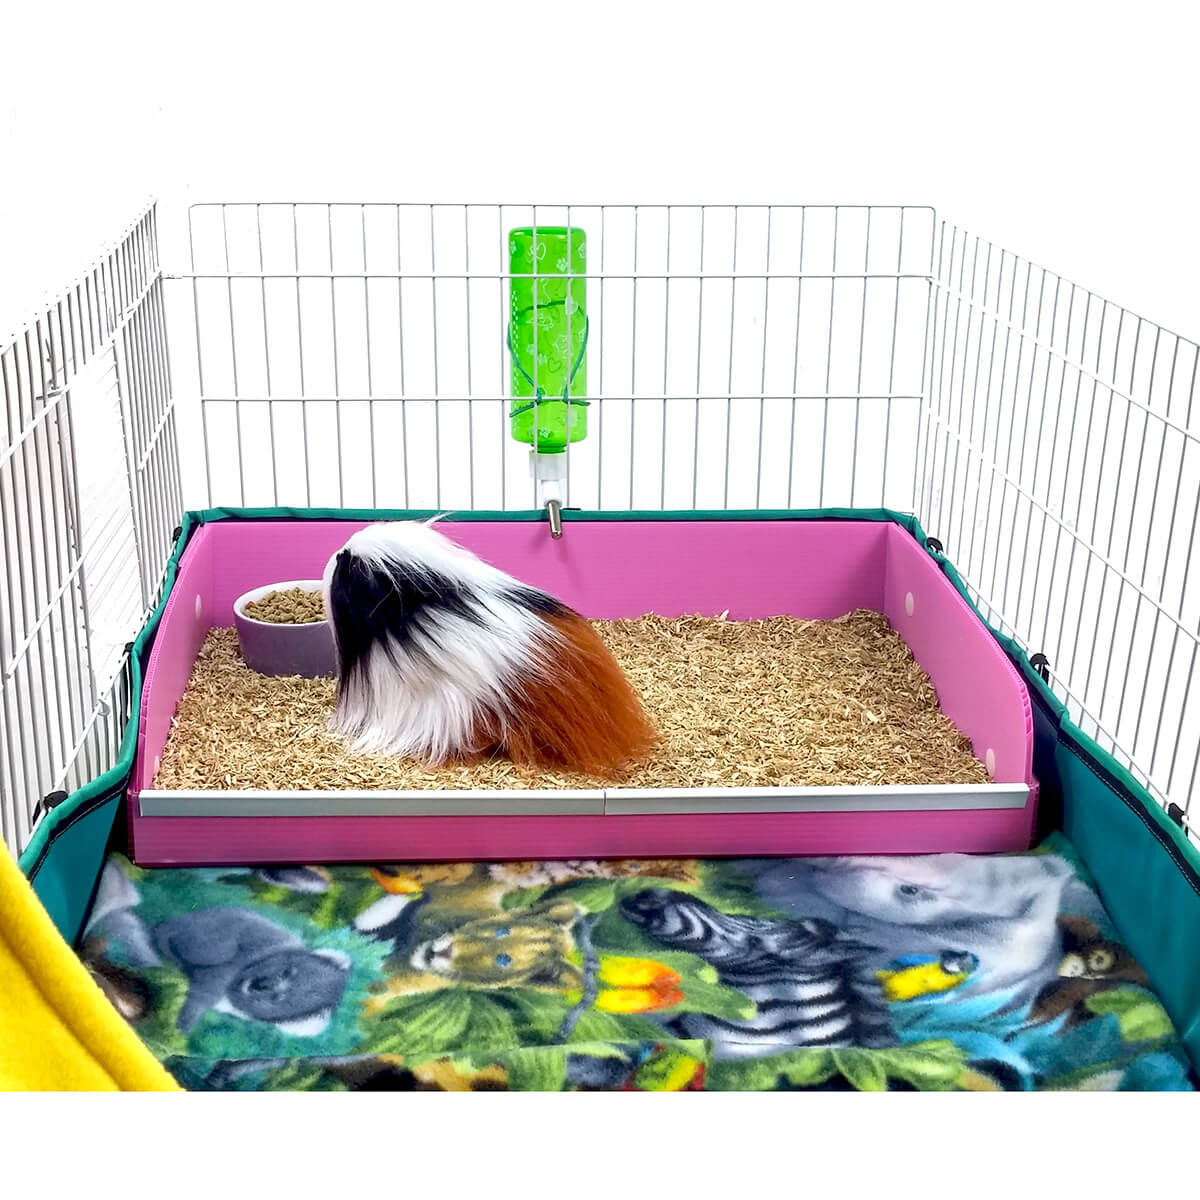 Bedding On Sale For Guinea Pigs